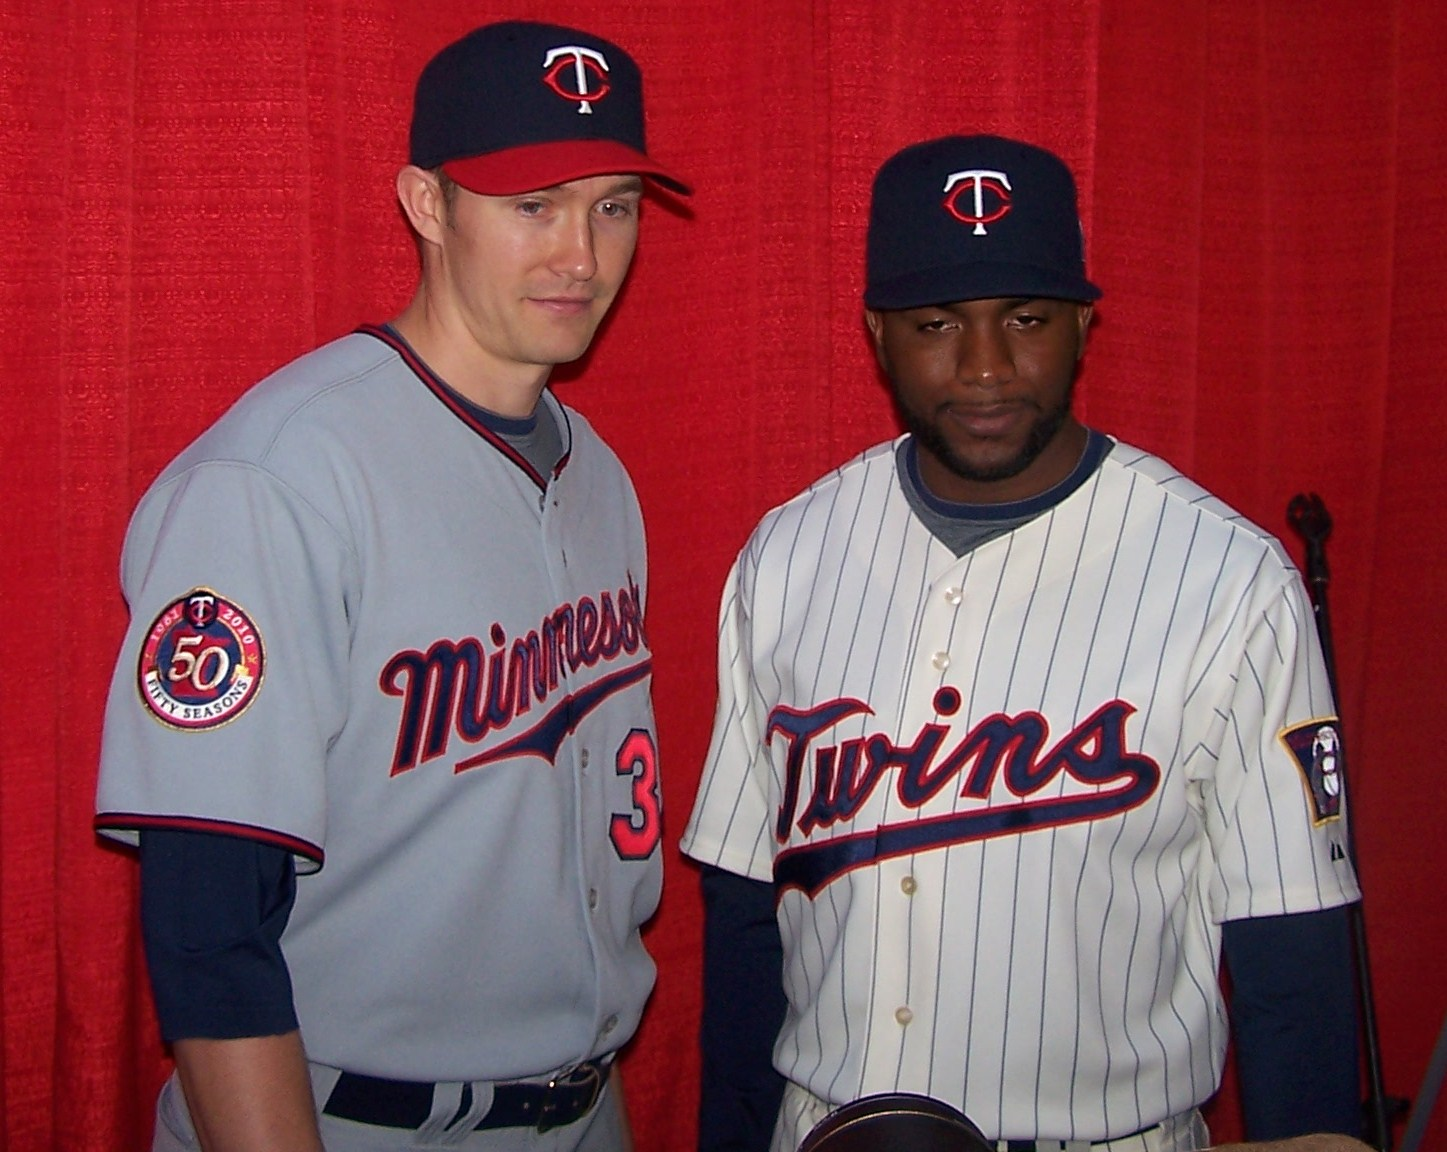 94816ca2020 Alright Hamilton!: Twins Uniform Unveiling - pictures